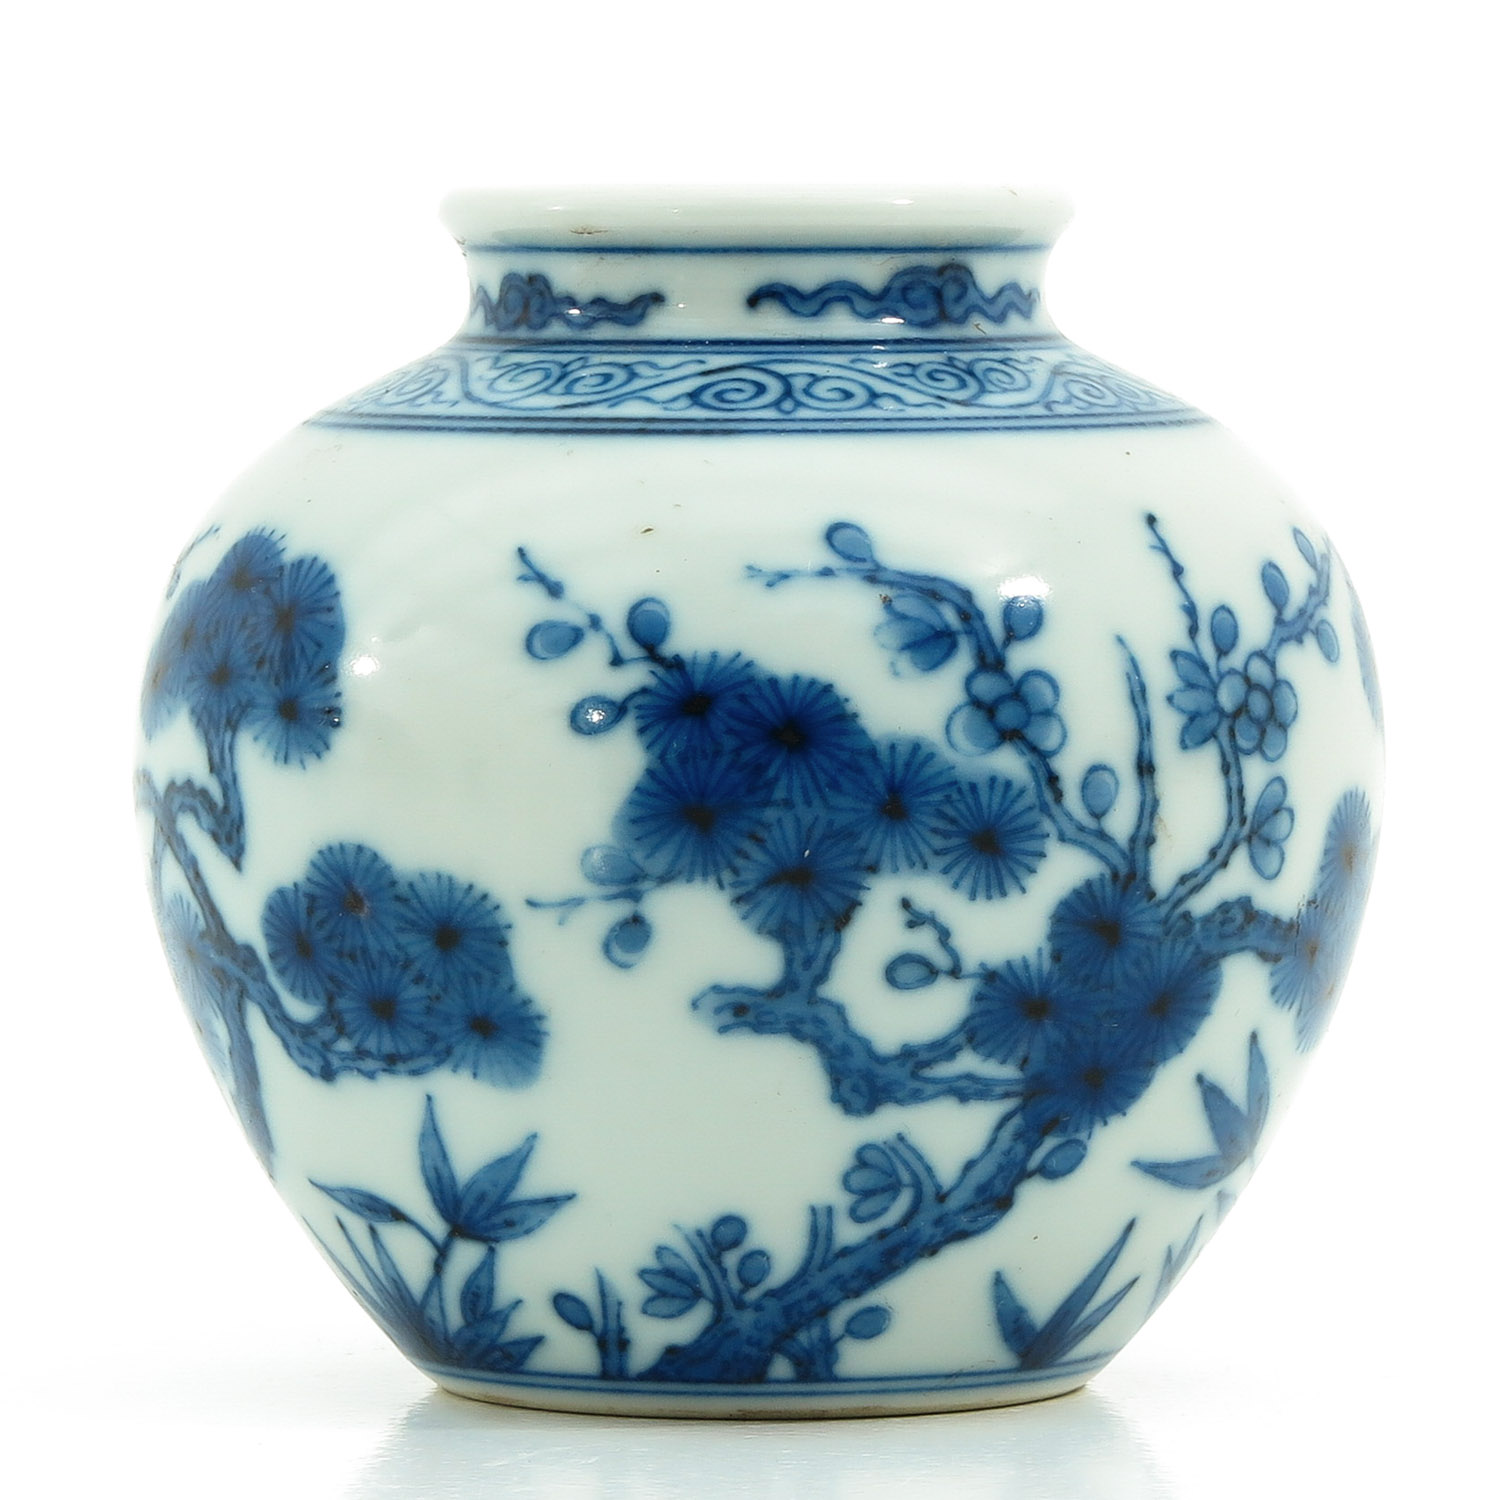 A Small Blue and White Vase - Image 2 of 9